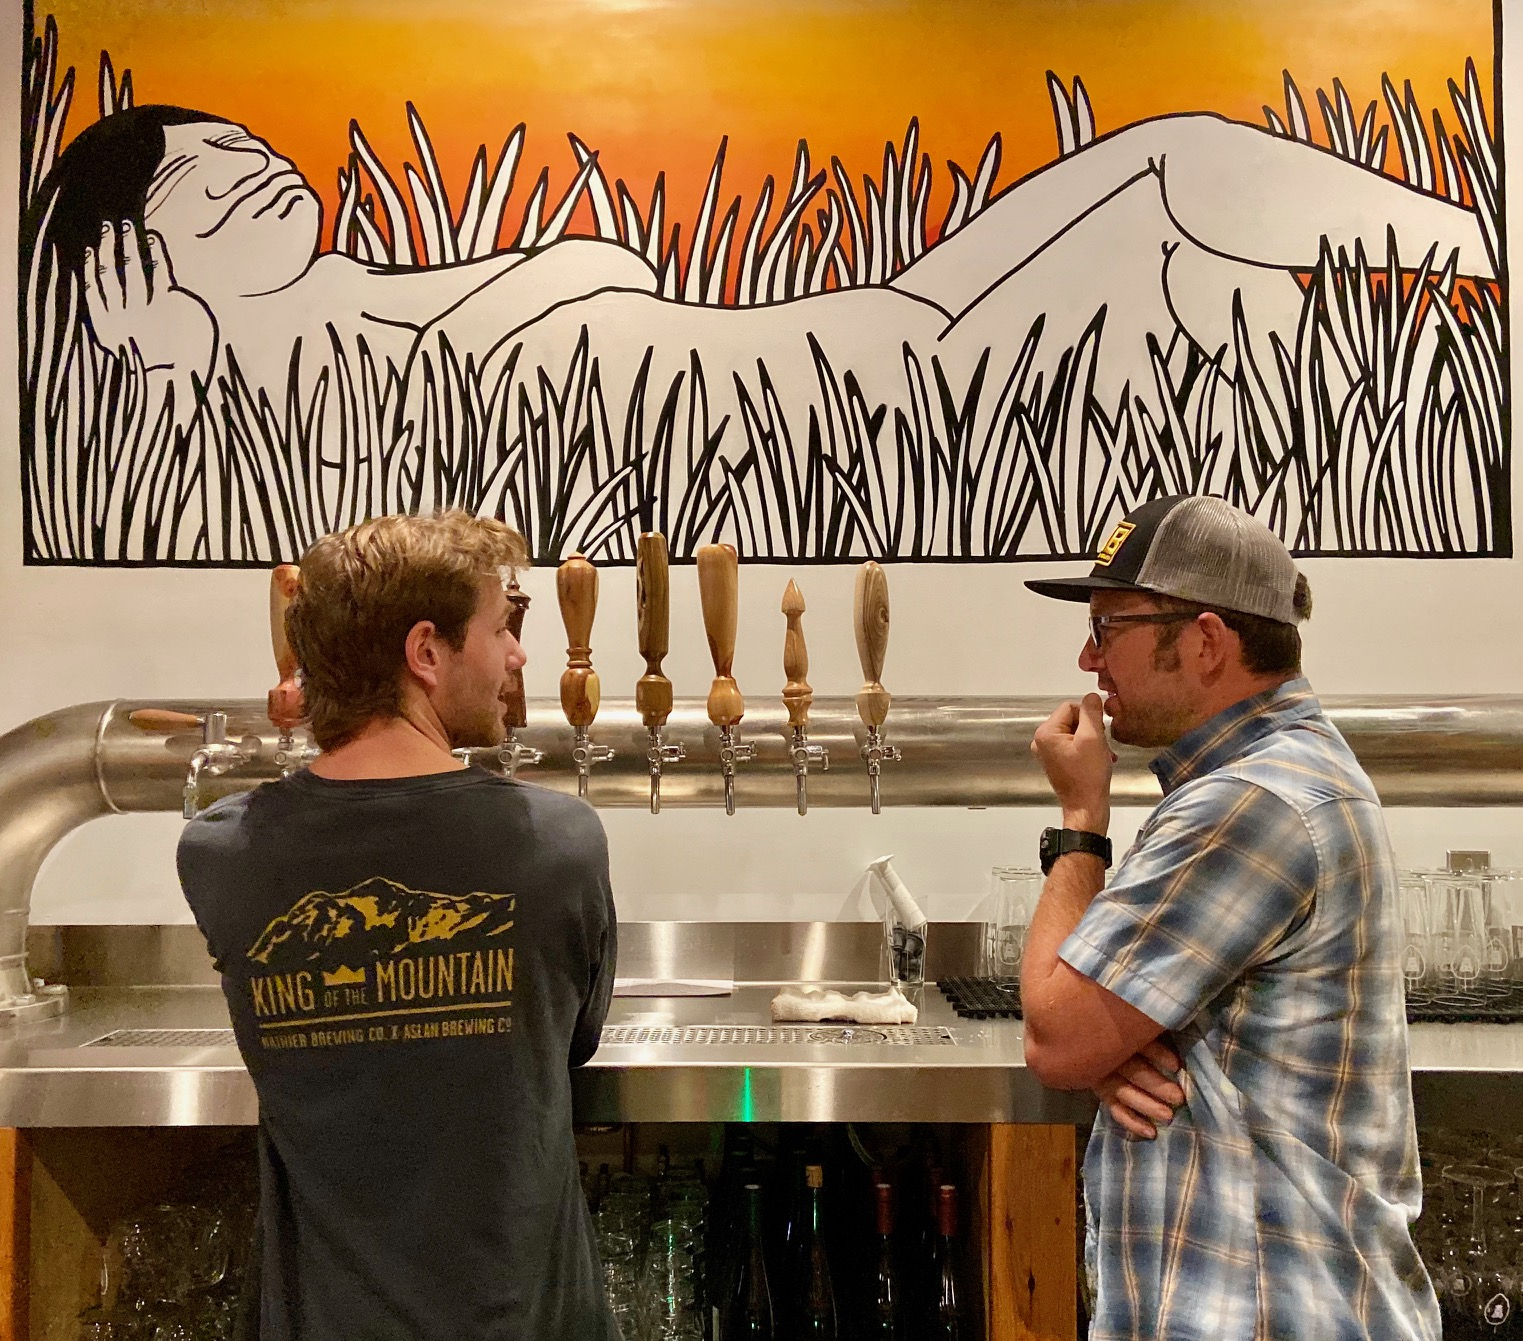 Co-Owner and CEO of Aslan Brewing, Jack Lamb pouring a beer while talking to Christian Ettinger from Hopworks Urban Brewery while at Aslan Brewing Seattle.